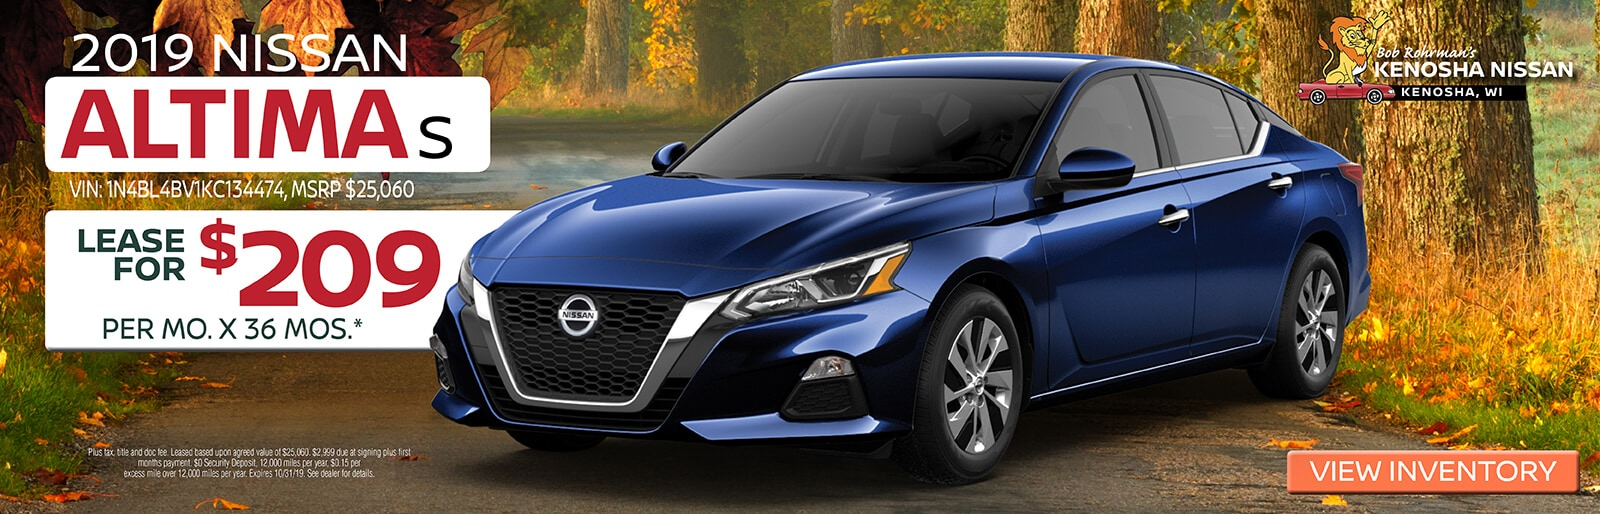 Lease a 2019 Nissan Altima S for $209/mo. for 36mos.